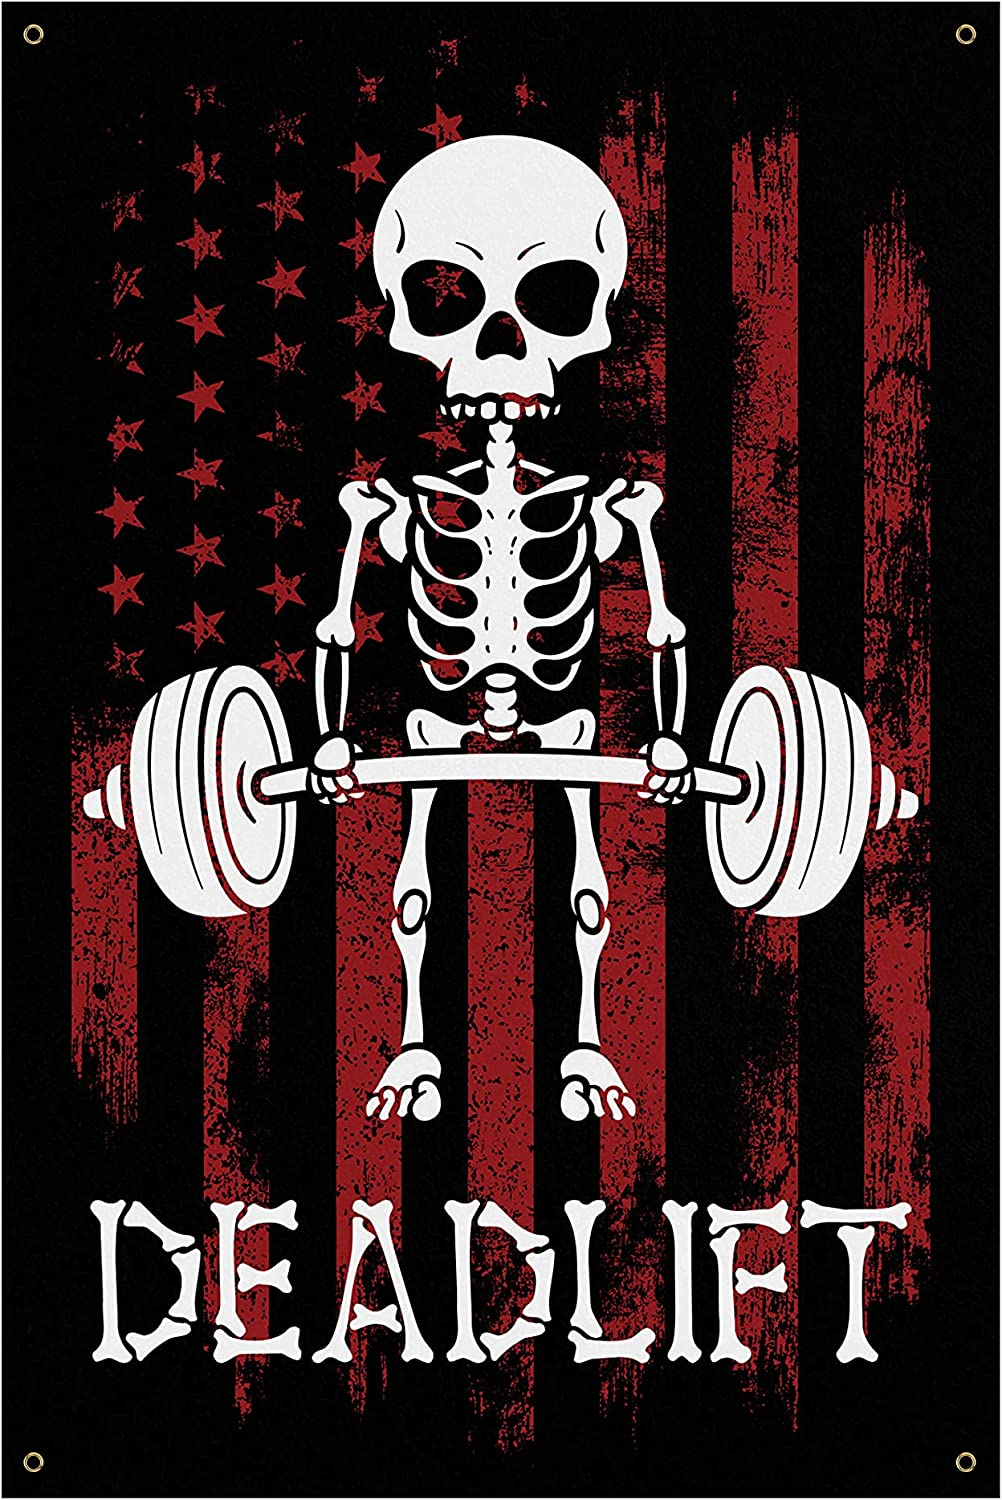 Sale SALE% OFF Deadlift Banner - Home Gym Wall Quote Motivational Art Decor Be super welcome